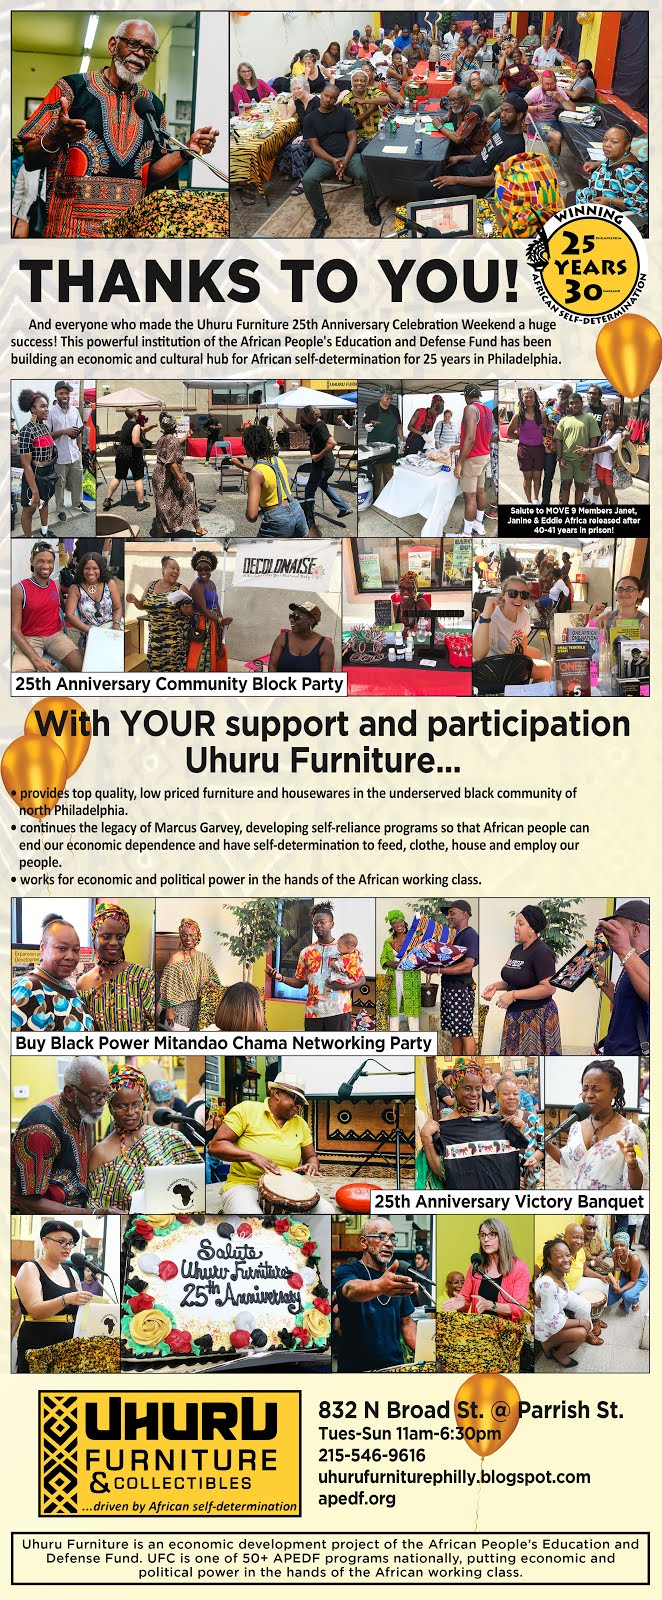 Thank you for 25 years of support for Uhuru Furniture!